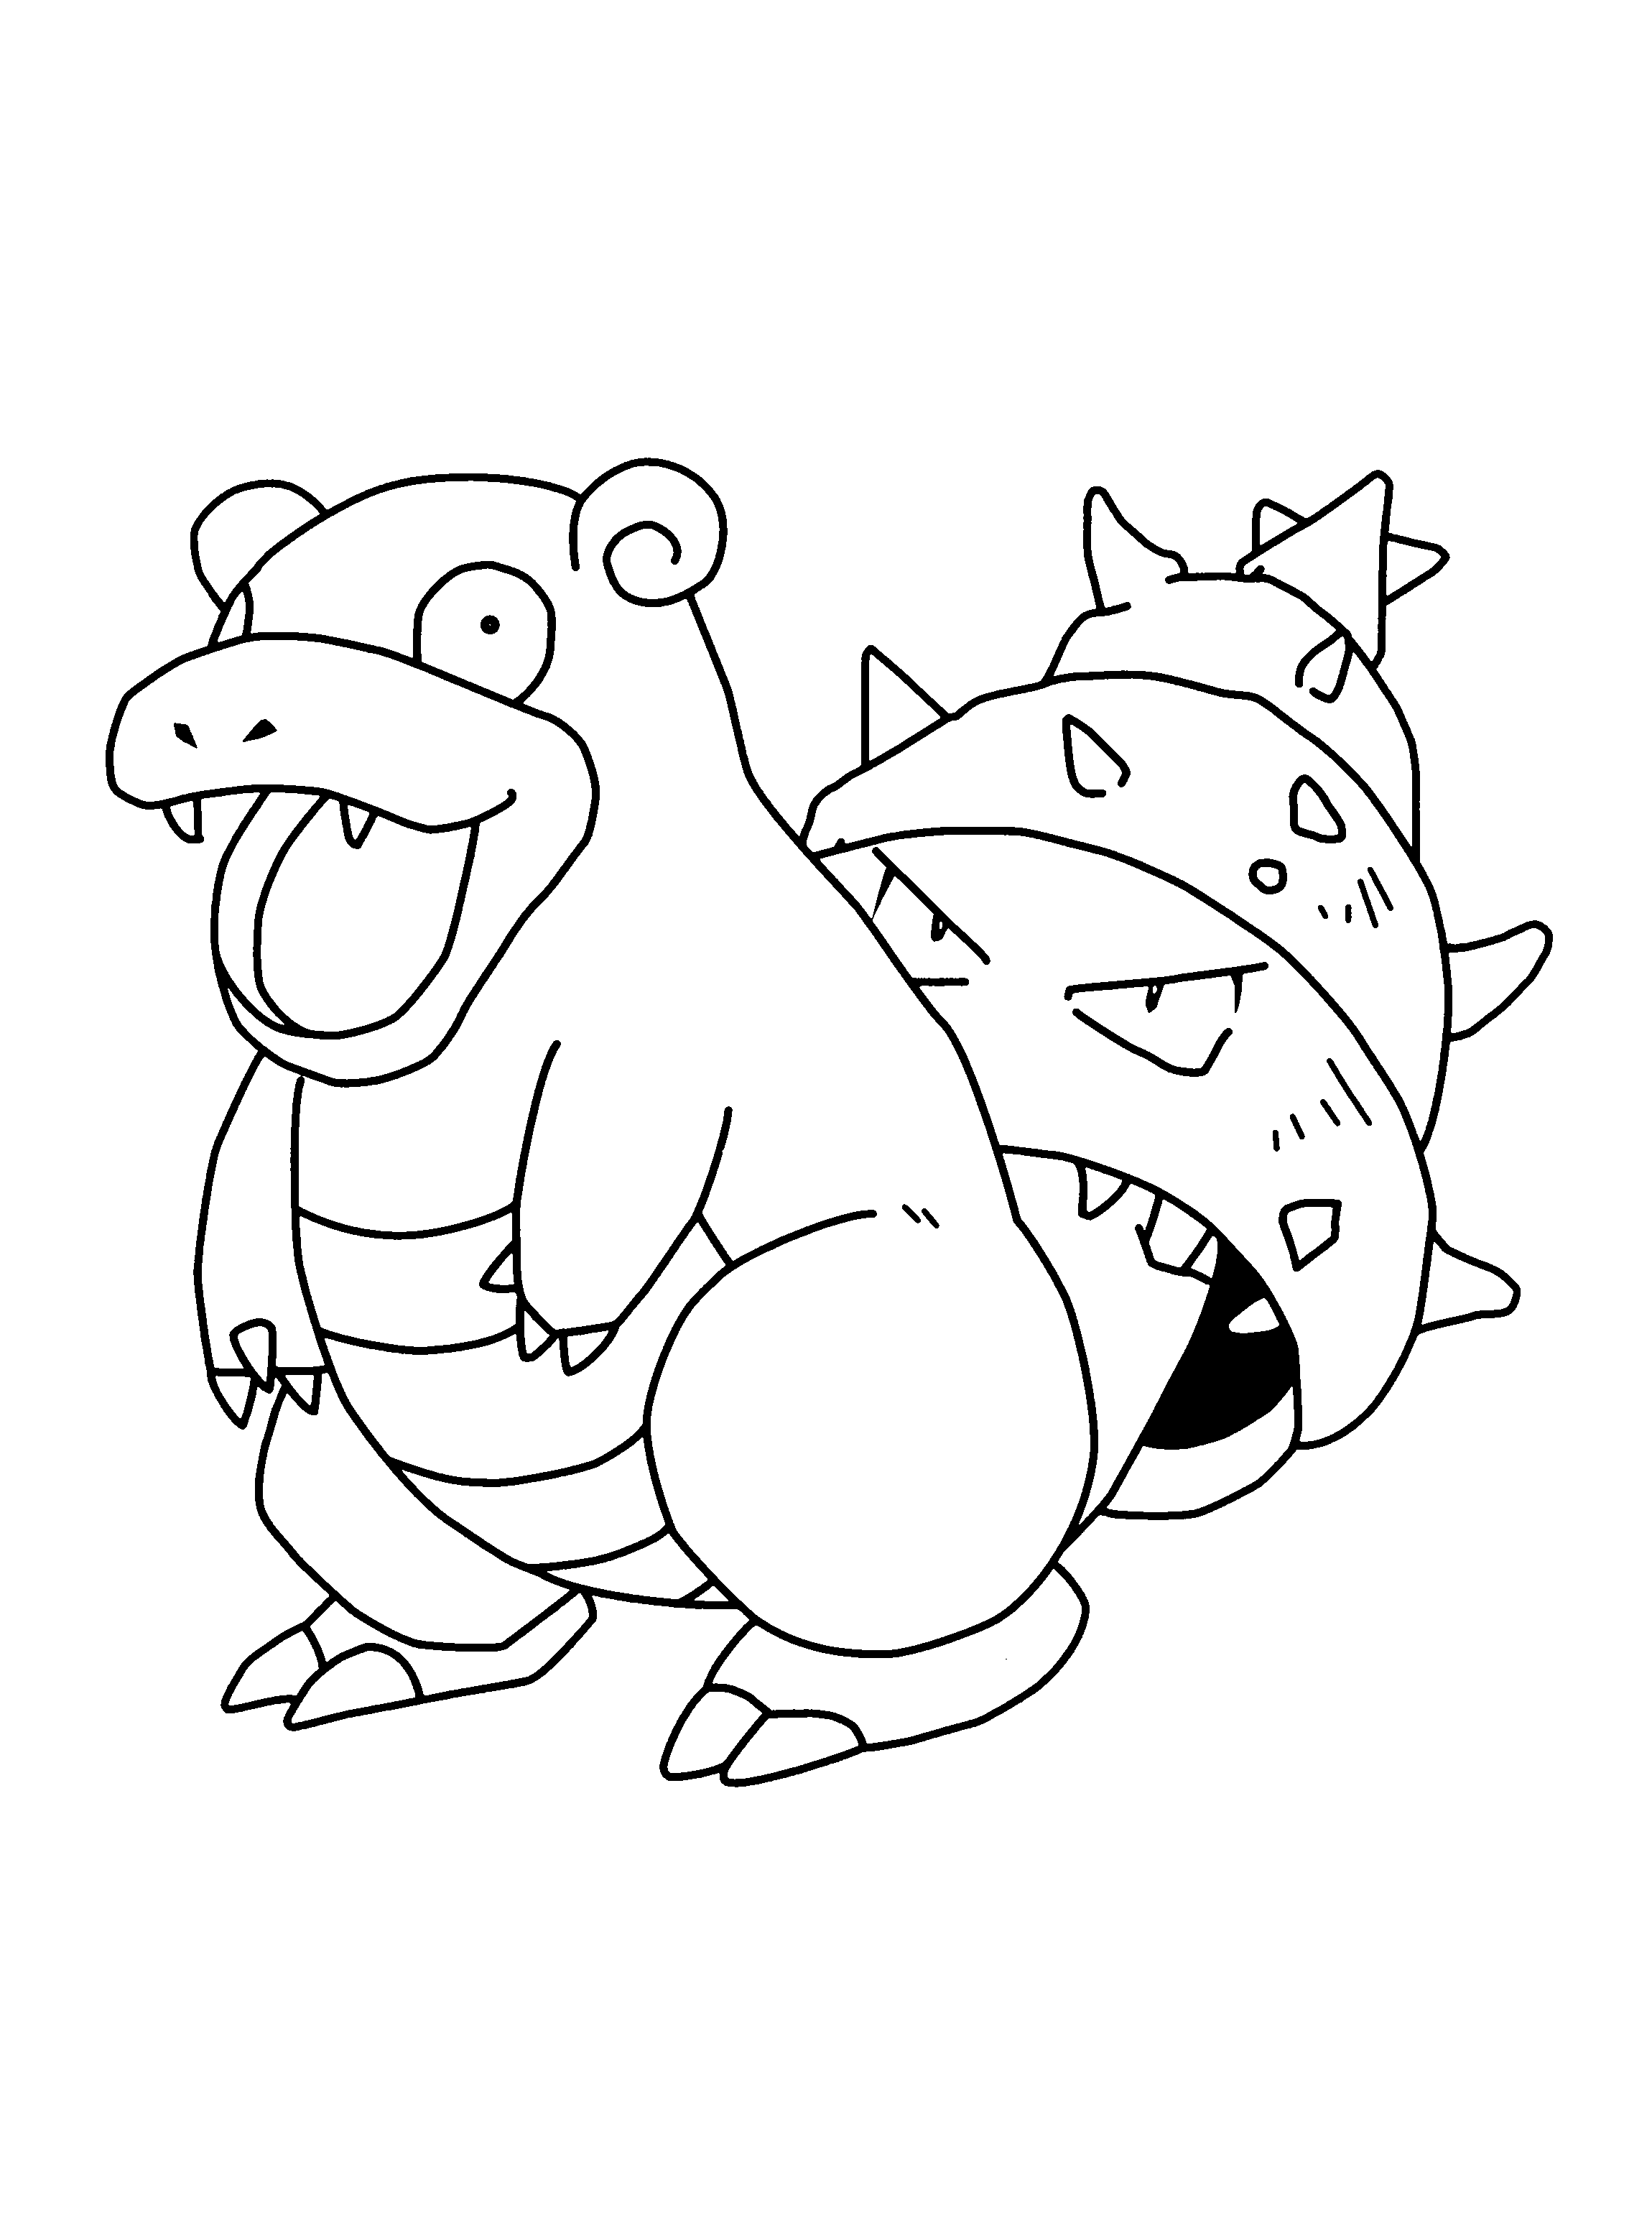 Pokemon coloring pages mega greninja - Pokemon Coloring Pages